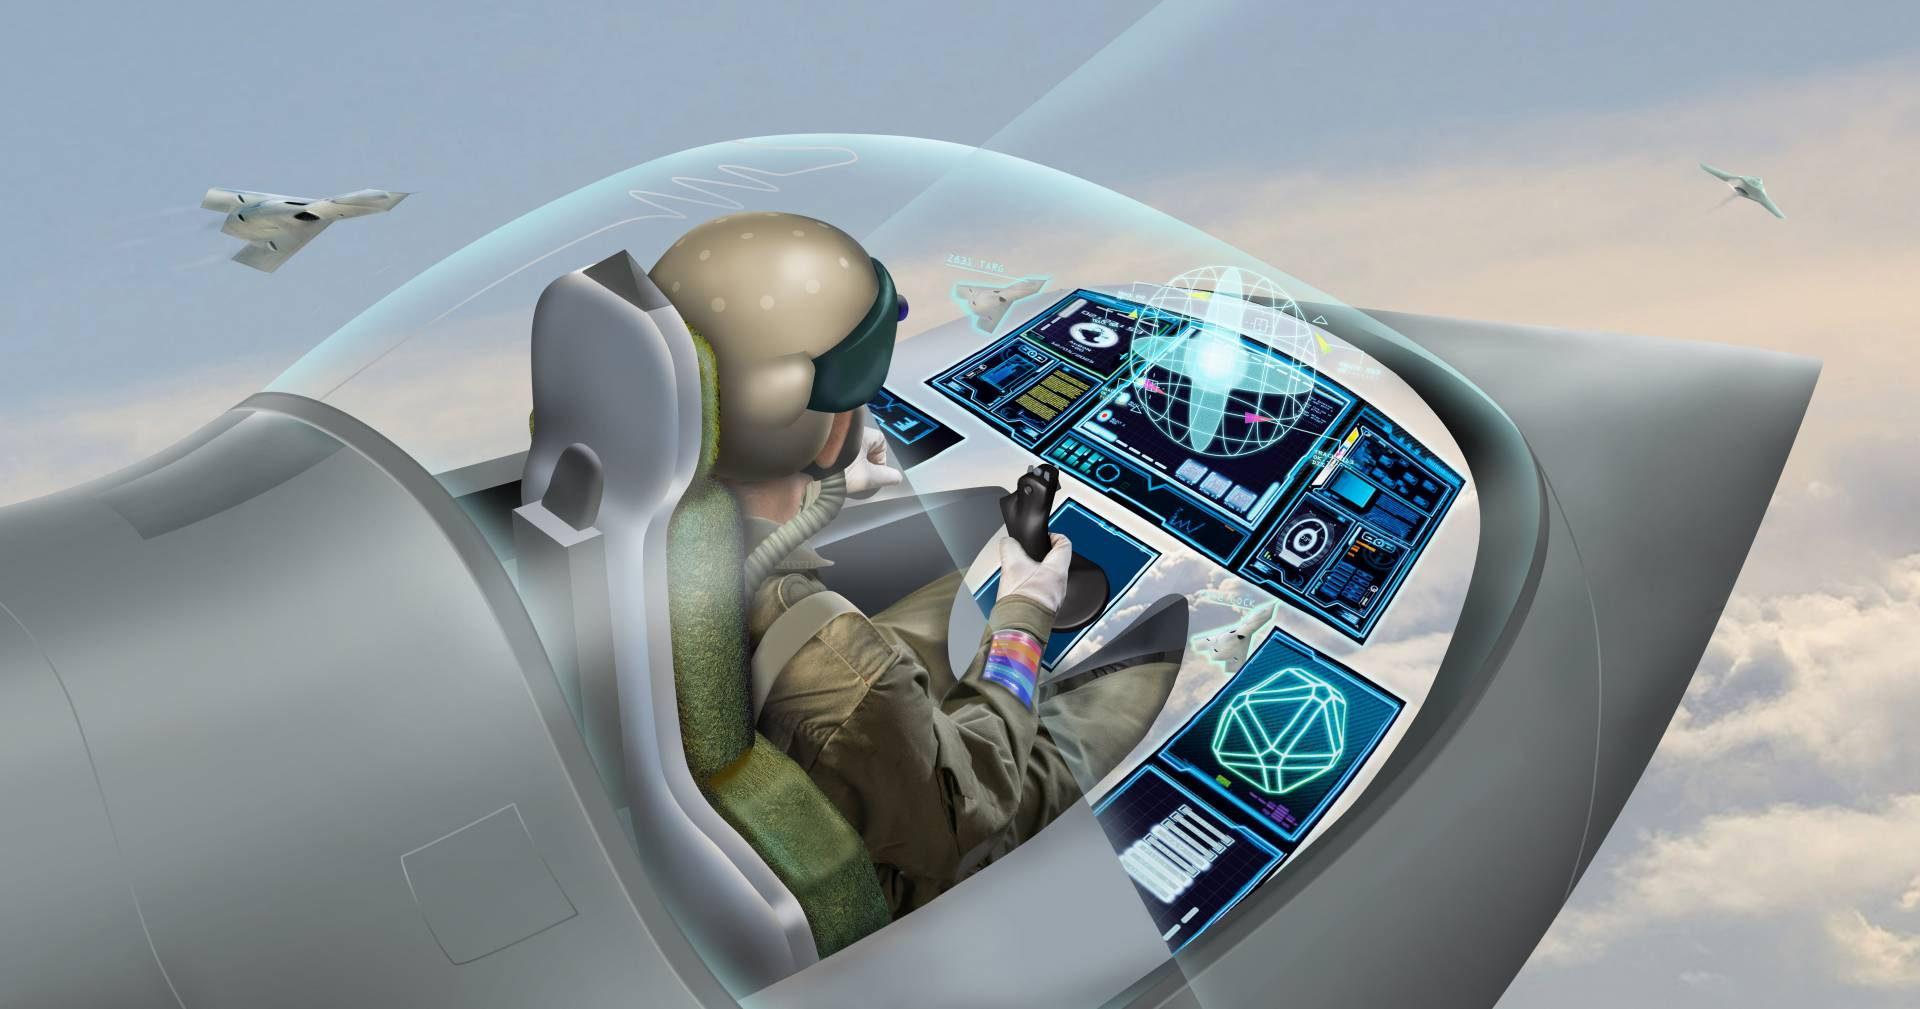 Future Mission Systems - Wearable Cockpit